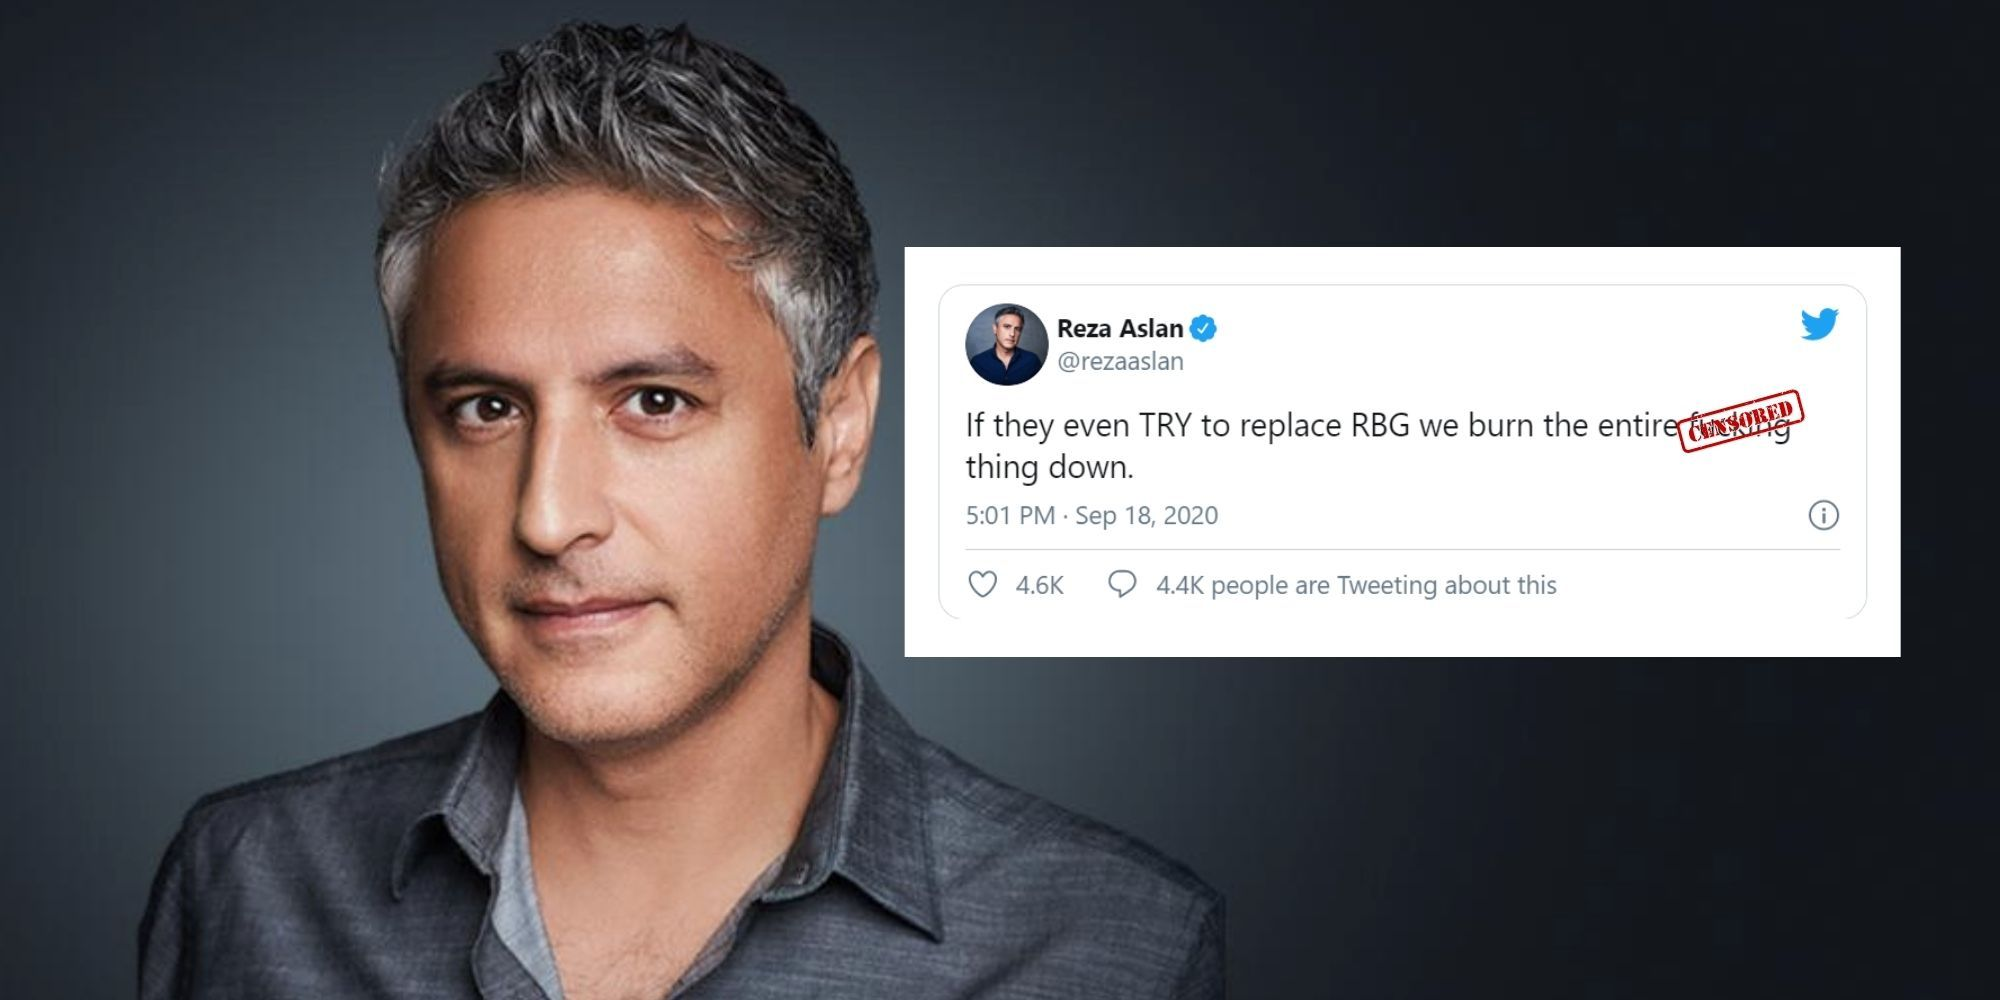 Disgraced former CNN host threatens violence if Republicans follow the constitution and replace RBG